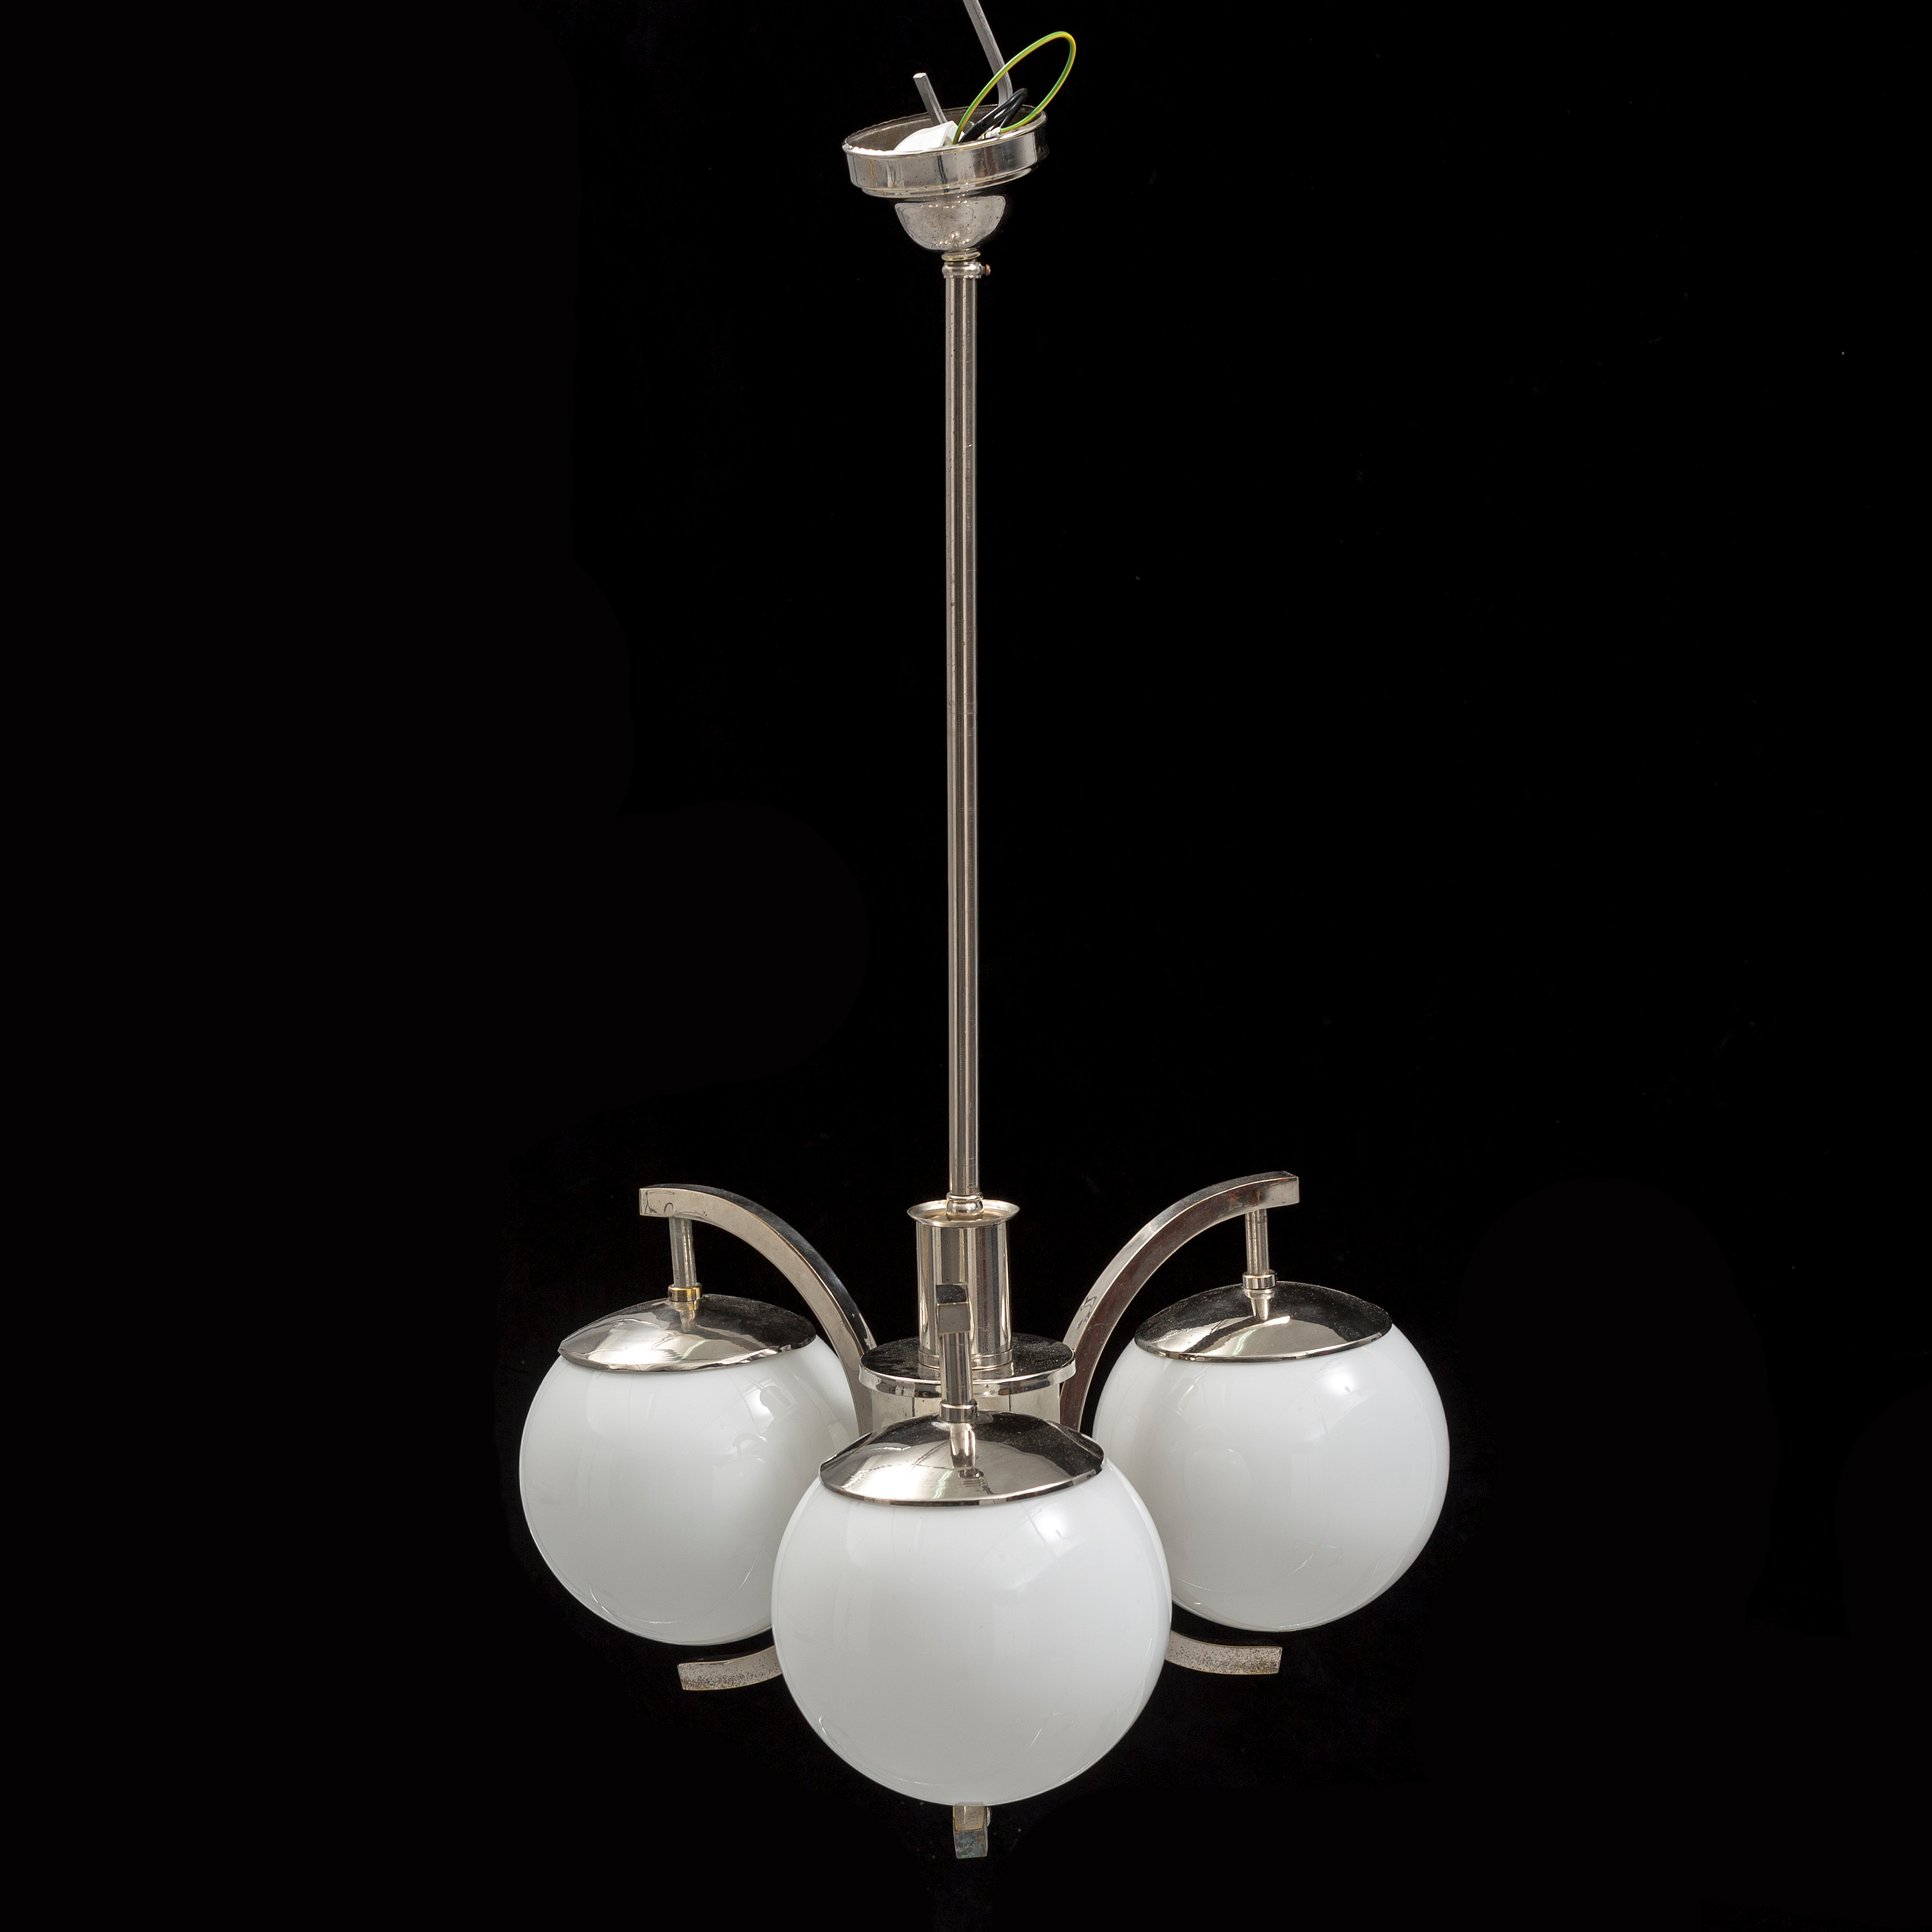 lights modernism french lighting glass art deco ceiling light items img geometric frosted with ceilings